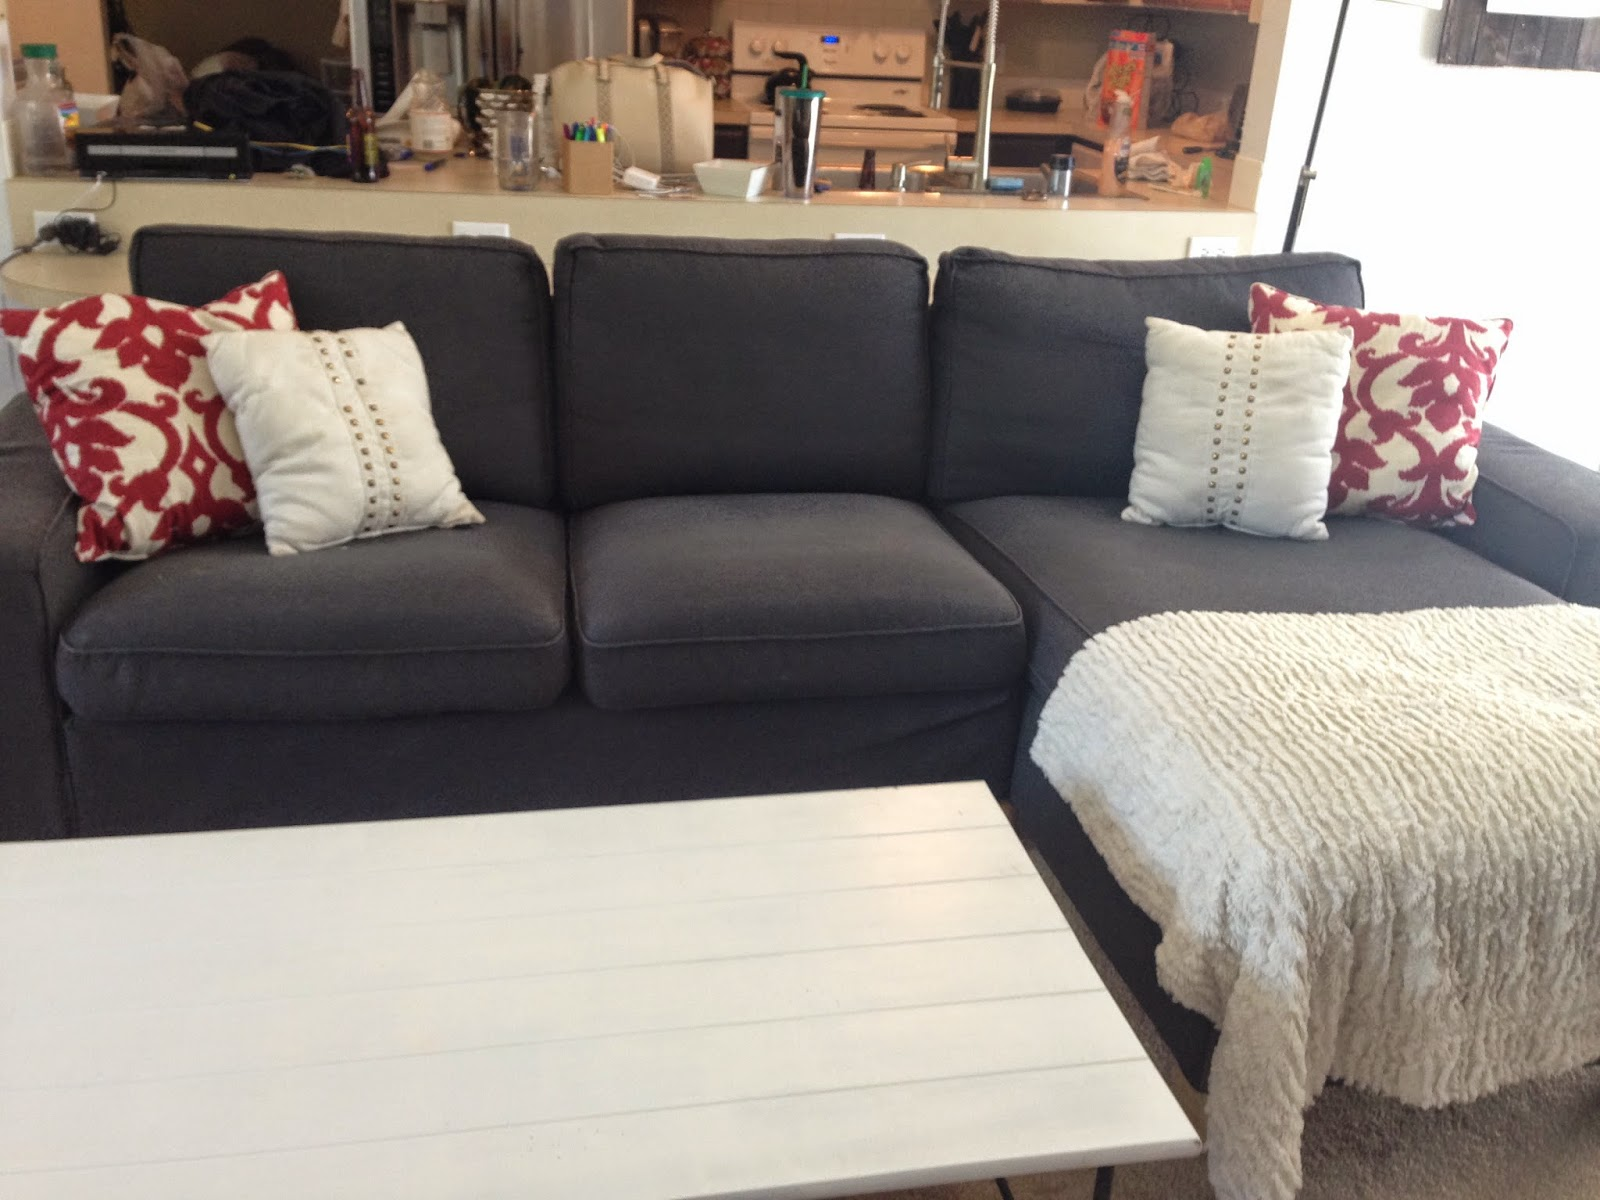 Ikea Kivik Sofa Tp Co Reviewing Our Ikea Kivik Sectional After Almost Two Years